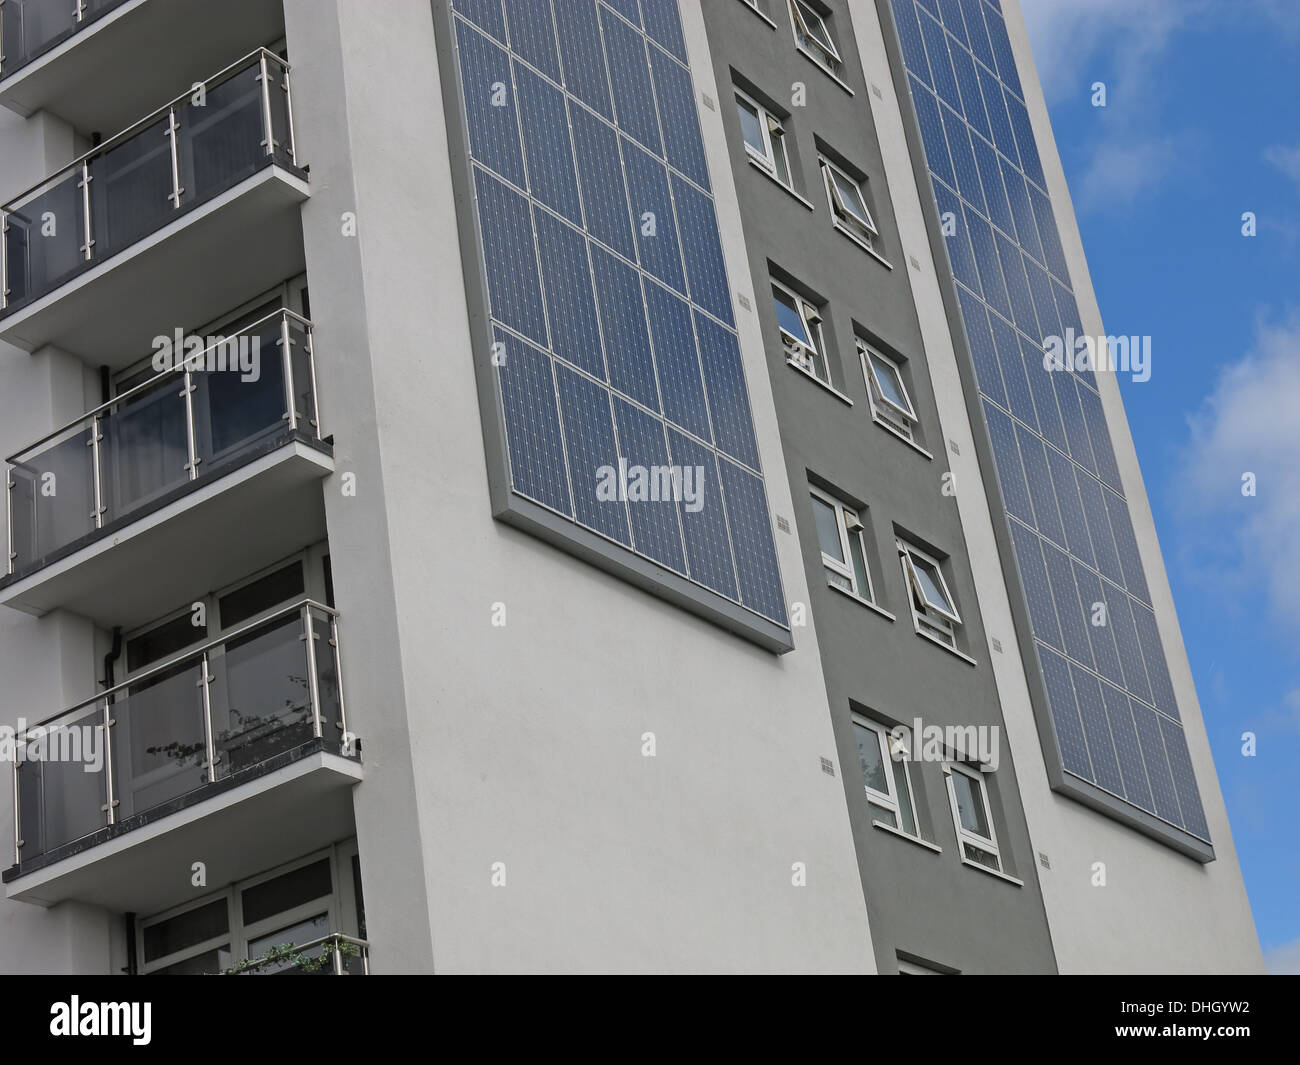 West,Midlands,England,UK,WS42AF,WS4,2AF,flat,flats,high,rise,highrise,ecological,Traditional,tower,block,turns,whg,design,beacon,housing,group,RSL,social,landlord,innovation,green,skyline,reduced,carbon,footprint,photo,voltaic,panels,photovoltaic,saving,savings,energy,bills,CESP,British,Gas,Butts,Gotonysmith,foot,print,tenant,tenants,resident,residents,bill,British,Gas,on,the,landmark,project,which,is,part,funded,by,the,national,Community,Energy,Savings,Programme,Chameleon,boards,landmark,insulation,SAP,rating,EPC,NHER,Upper,Forster,Street,efficiency,improvements,improvement,pioneer,deal,greendeal,retrofit,project,towerblock,concrete,construction,materials,Black,Country,Buy Pictures of,Buy Images Of,Black Country,Walsall Black Country